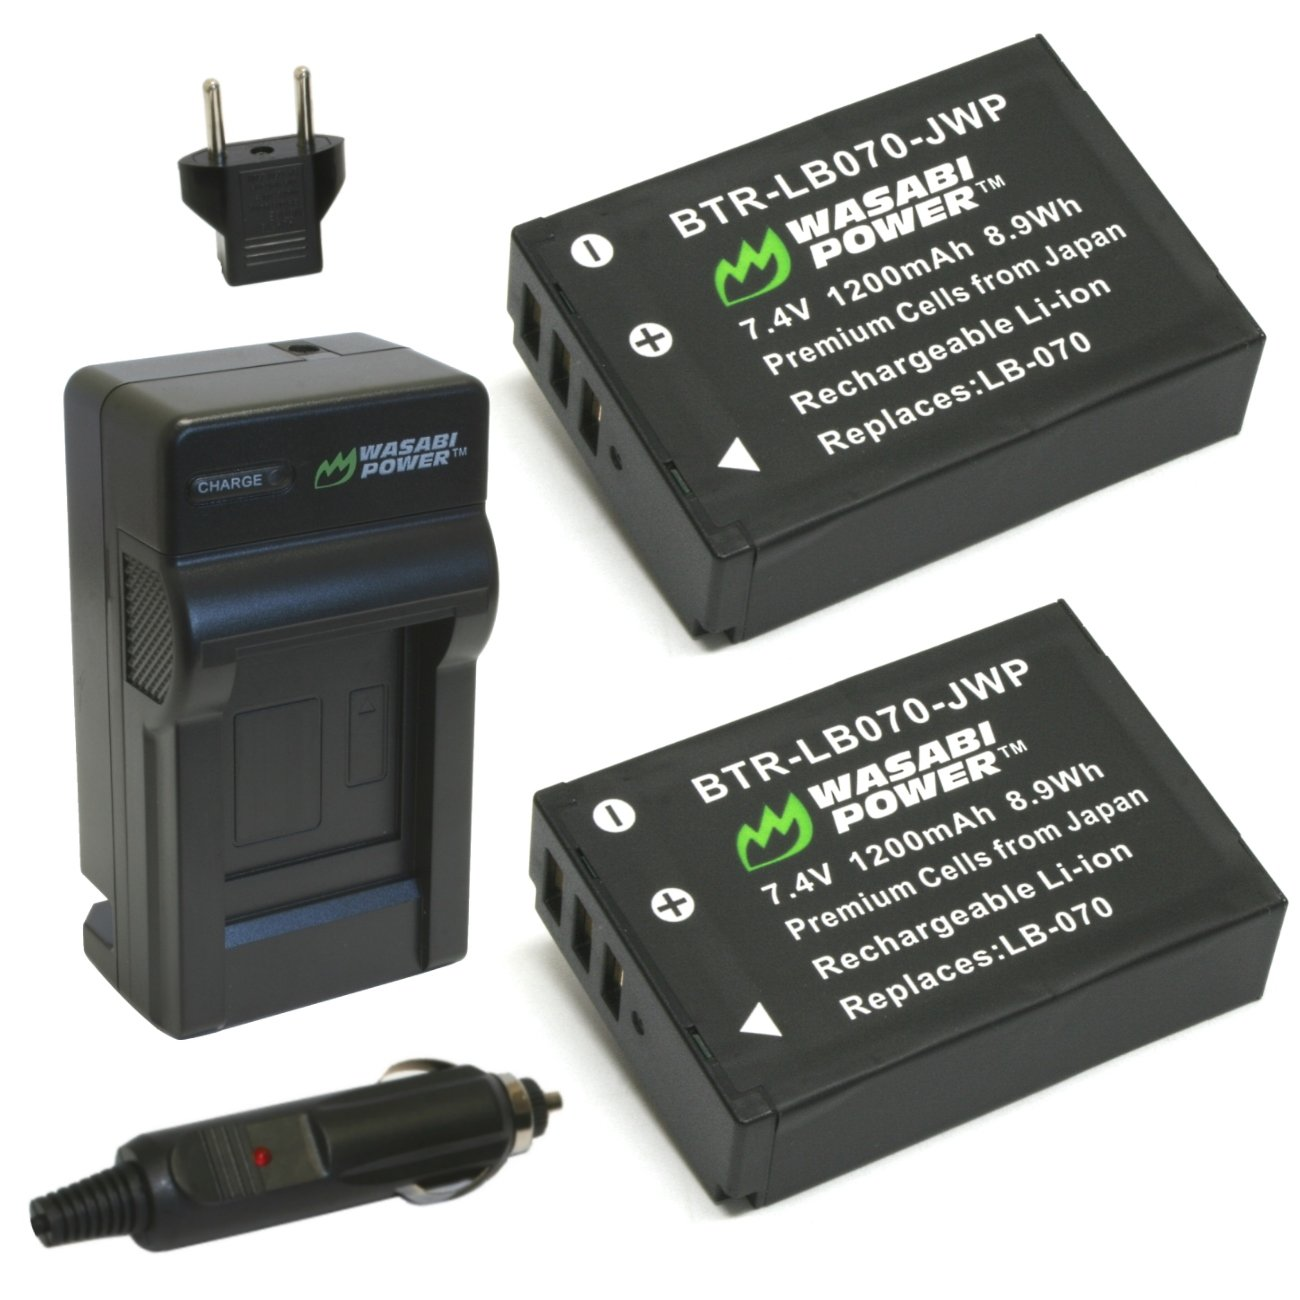 Wasabi Power Battery (2-Pack) and Charger for for Kodak LB-070 and PIXPRO AZ651, S-1